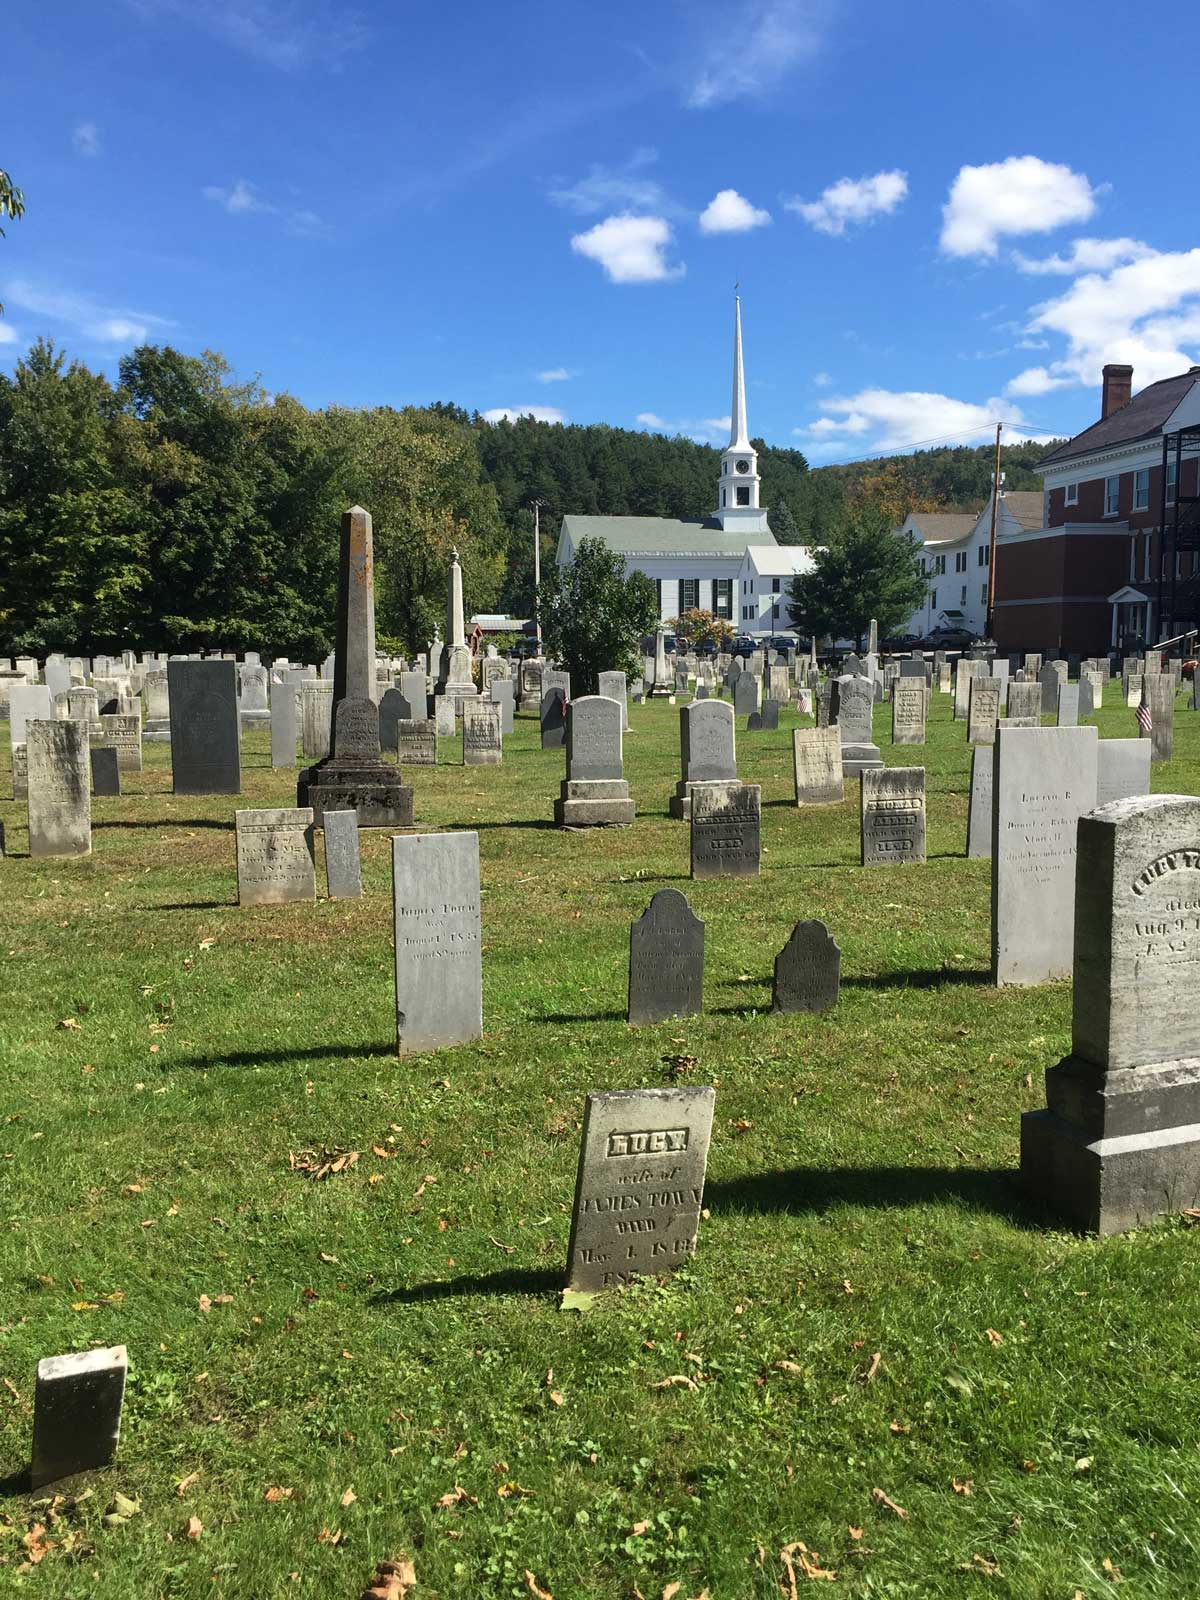 Old Yard Cemetery at Stowe, photos by Kira Butler